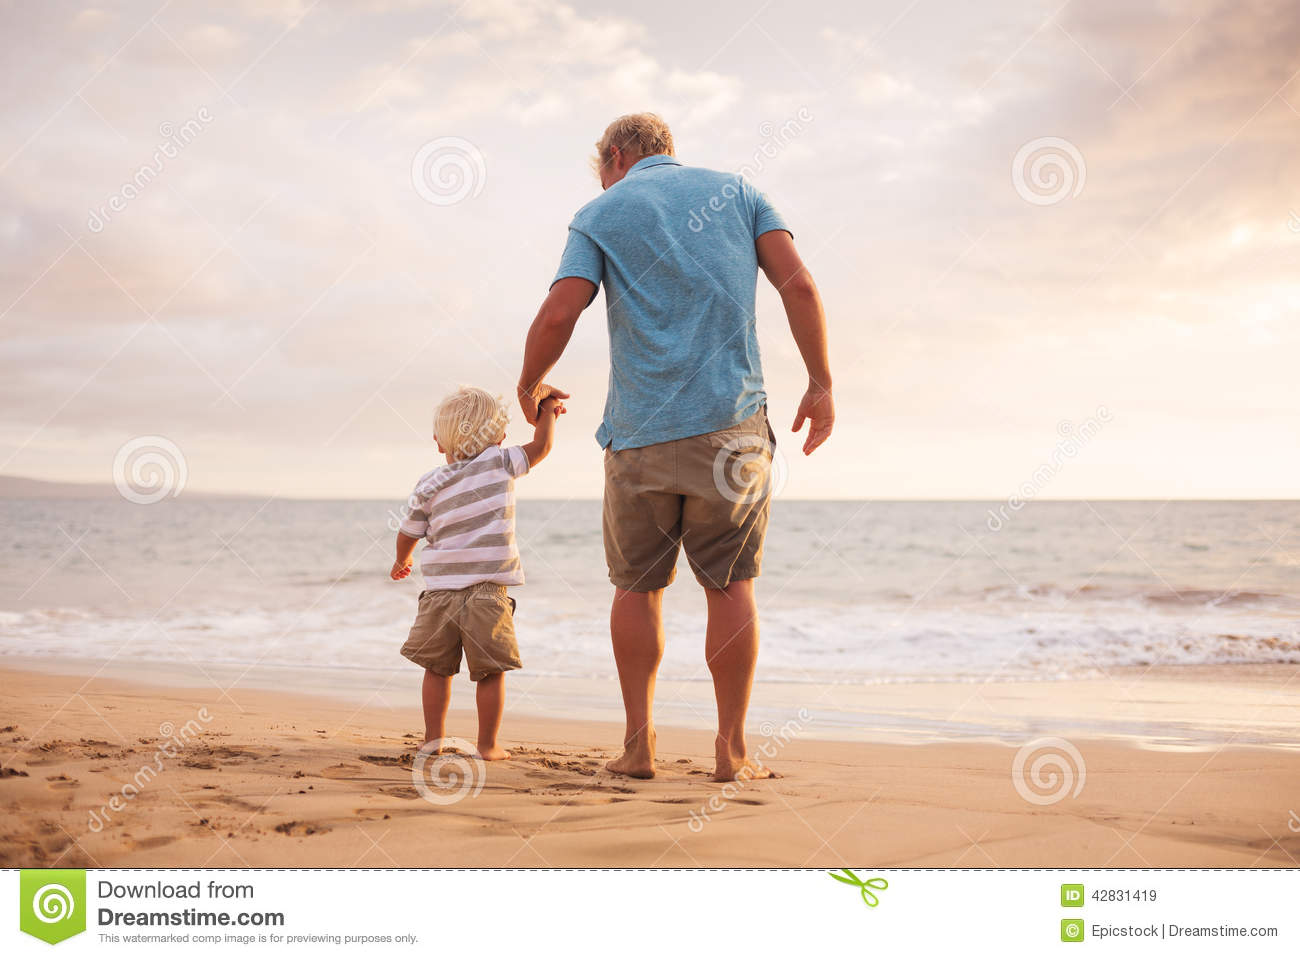 Father and son wallking on the beach